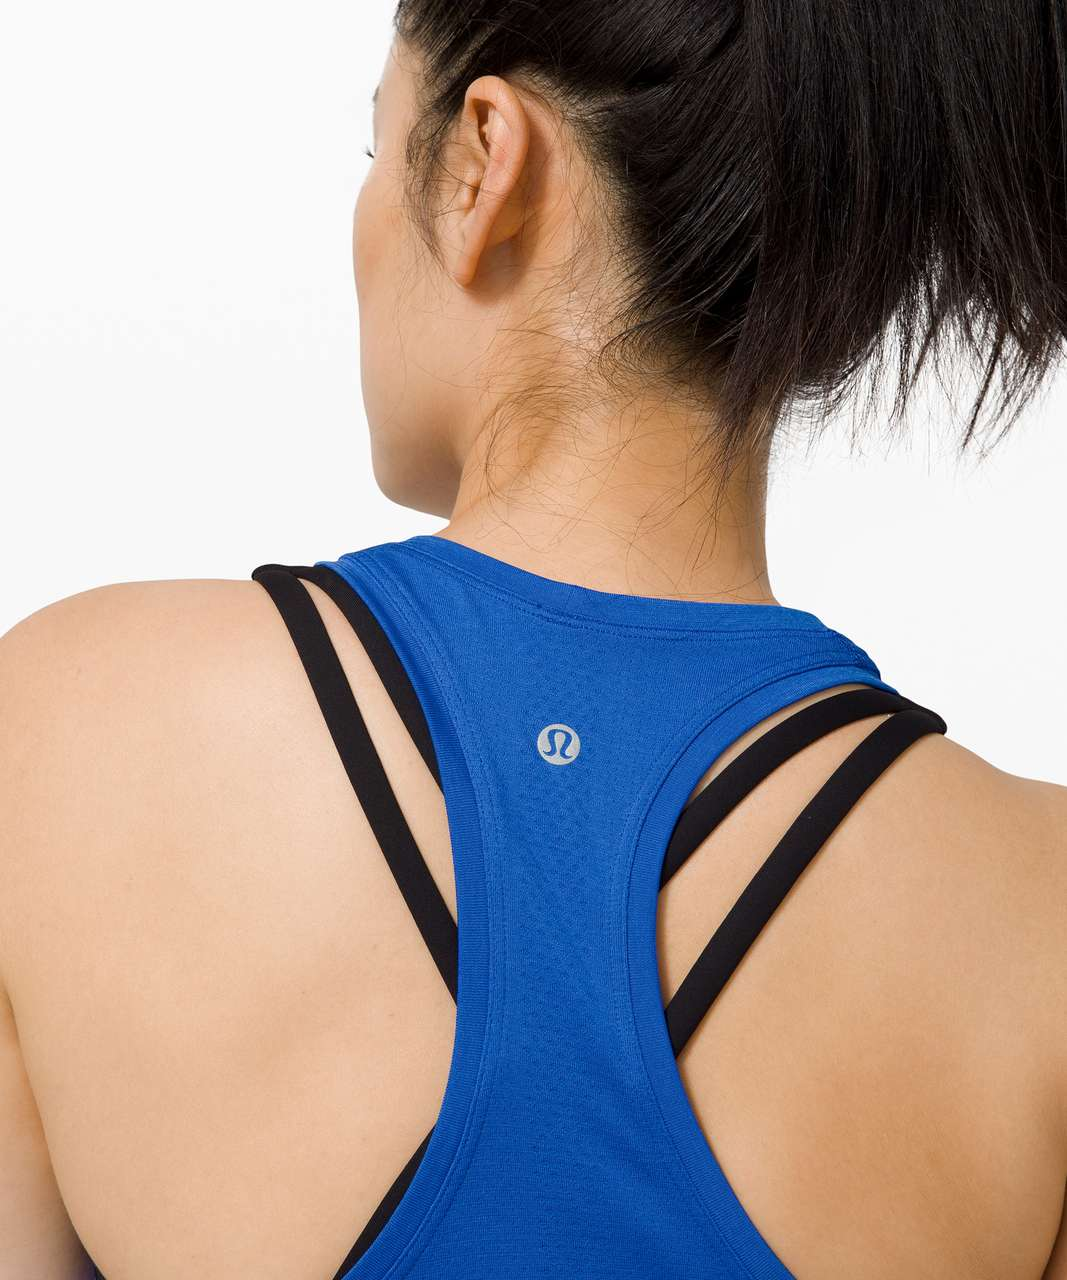 Lululemon Swiftly Tech Racerback 2.0 - Cerulean Blue / Cerulean Blue